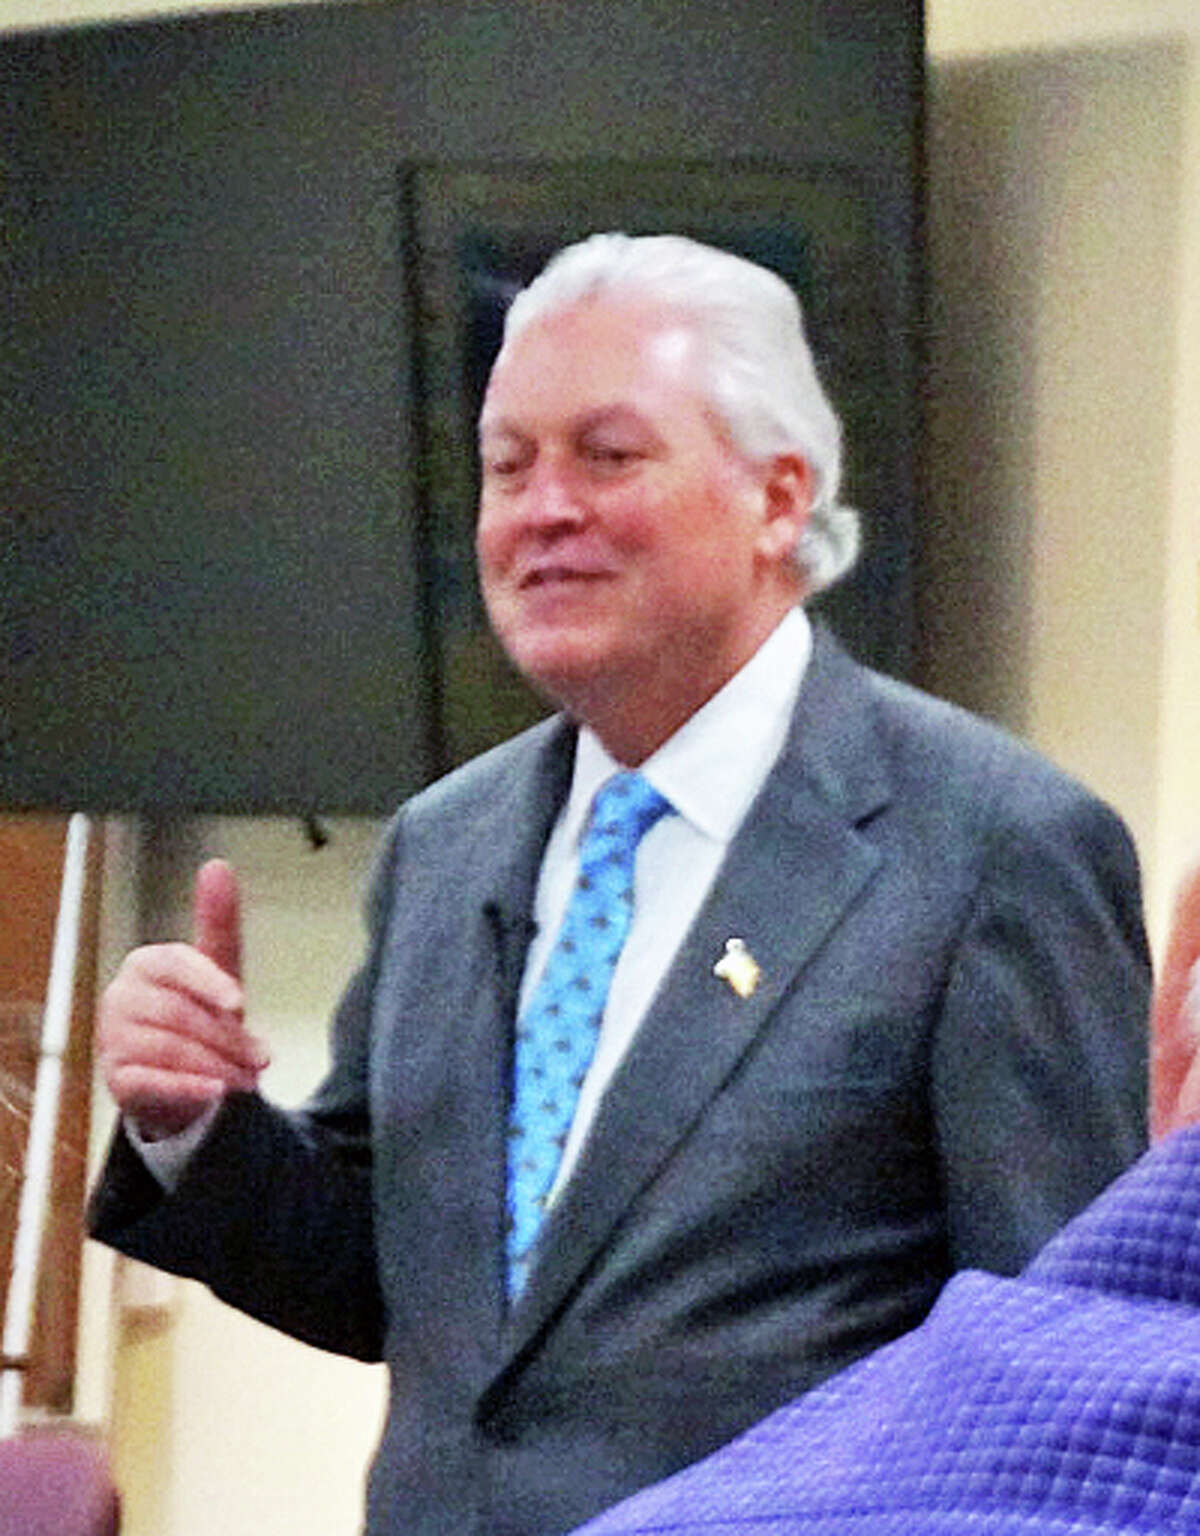 First Selectman Mike Tetreau is seeking re-election to a second term.